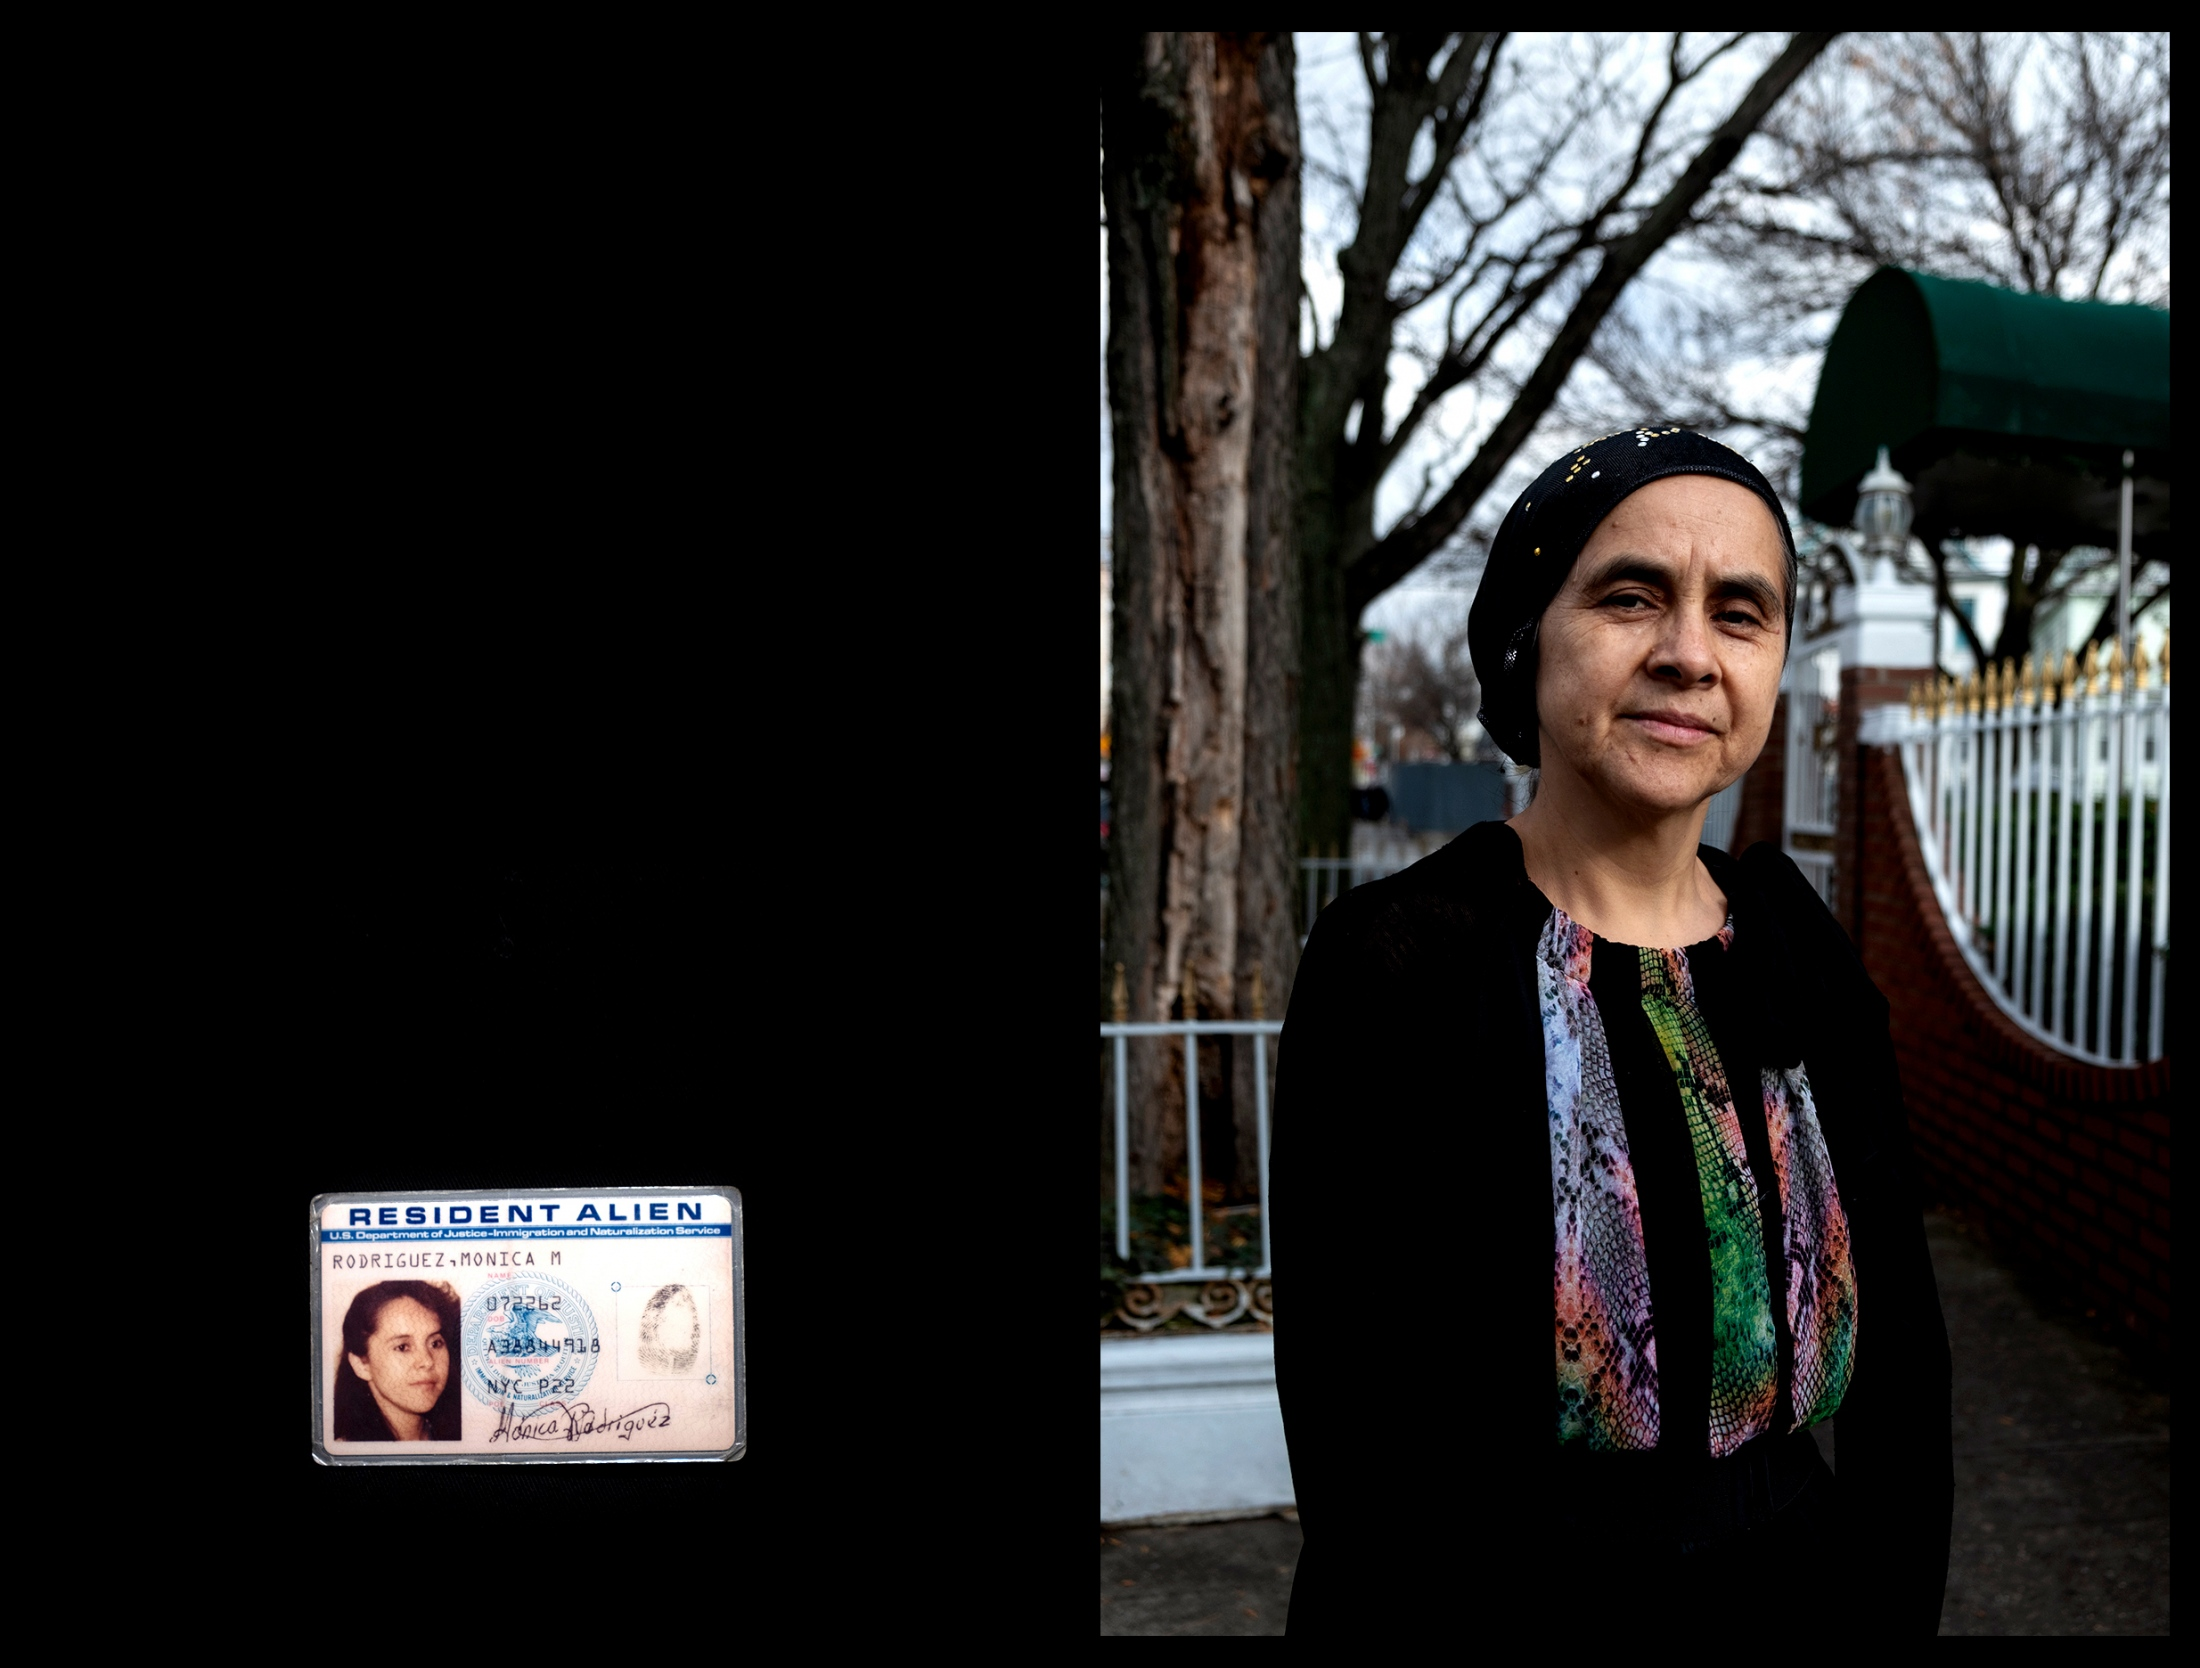 "In her flower-ingrained wallet, Mónica Rodriguez, 56, still carries the first green card she obtained at 21, when her father arranged for her to leave her life in Quito, Ecuador and migrate to the United States. For 37 years, Rodriguez lived comfortably as a legal resident of New York. She worked as a seamstress and raised her two daughters, never fearing of being be deported.  But, as her peers began receiving their U.S. citizenships, Rodriguez felt she was falling behind. Her husband insisted she should apply for naturalization. As a citizen, he told her, people take you more seriously. She lacked strong English skills so waited until she met the ""55/15"" exception enforced by the U.S. Citizenship and Immigration Services. The rule allows applicants to take the naturalization exam in their native language if they are 55 or older and have lived as permanent residents of the U.S. for at least 15 years. Last August, Rodriguez became a U.S. citizen.  Left: The first green card Mónica Rodriguez obtained when she migrated to the U.S. at 21."